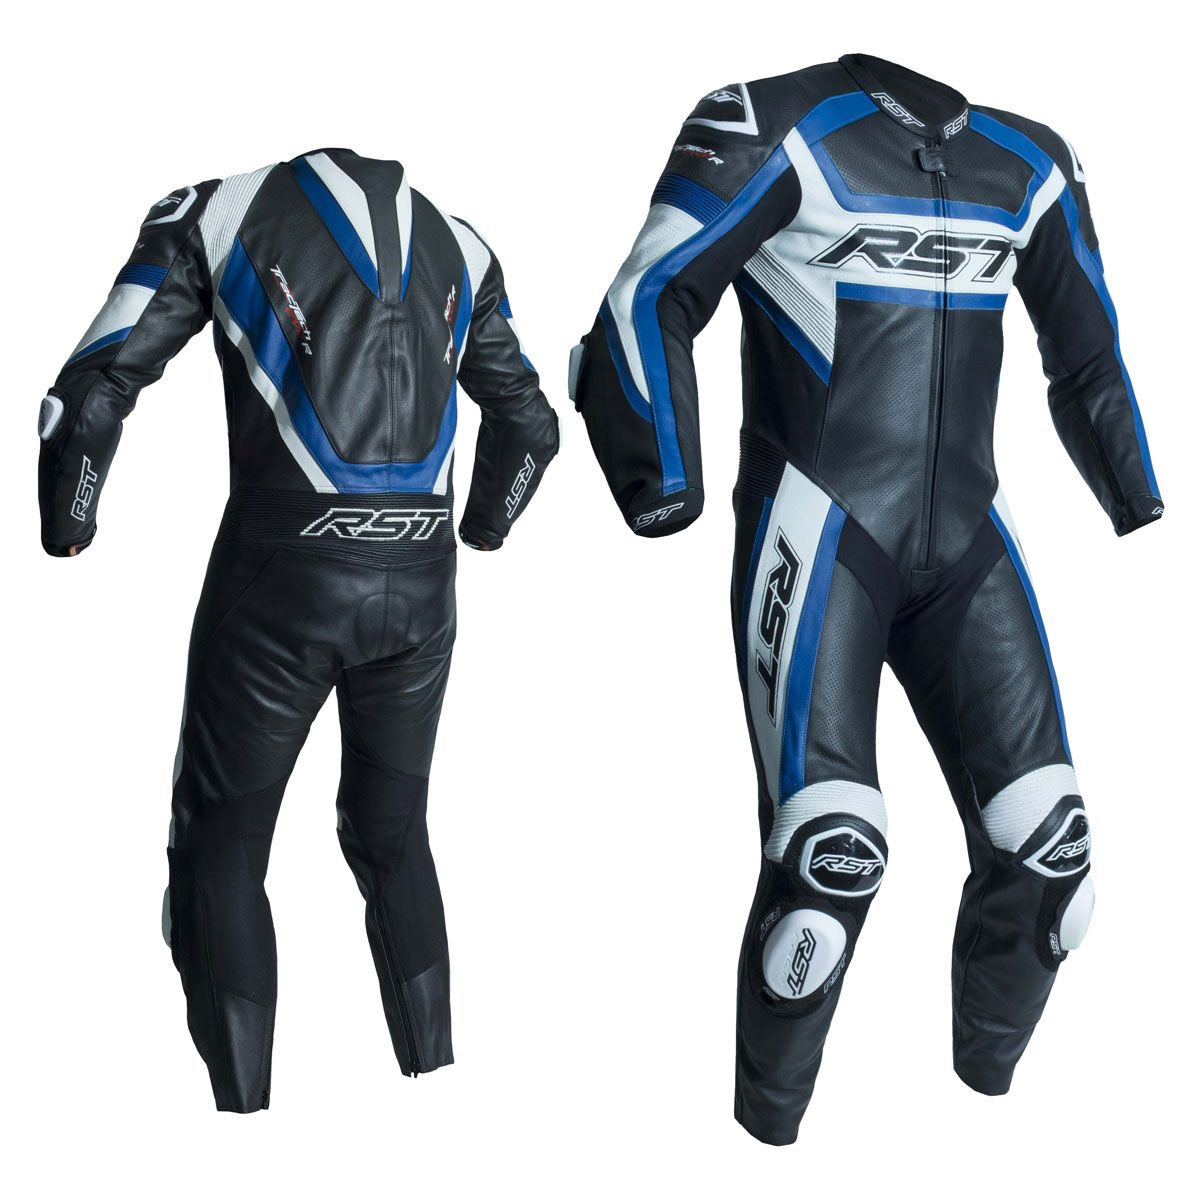 RST Tractech Evo R CE One Piece Leather Suit Black / Blue